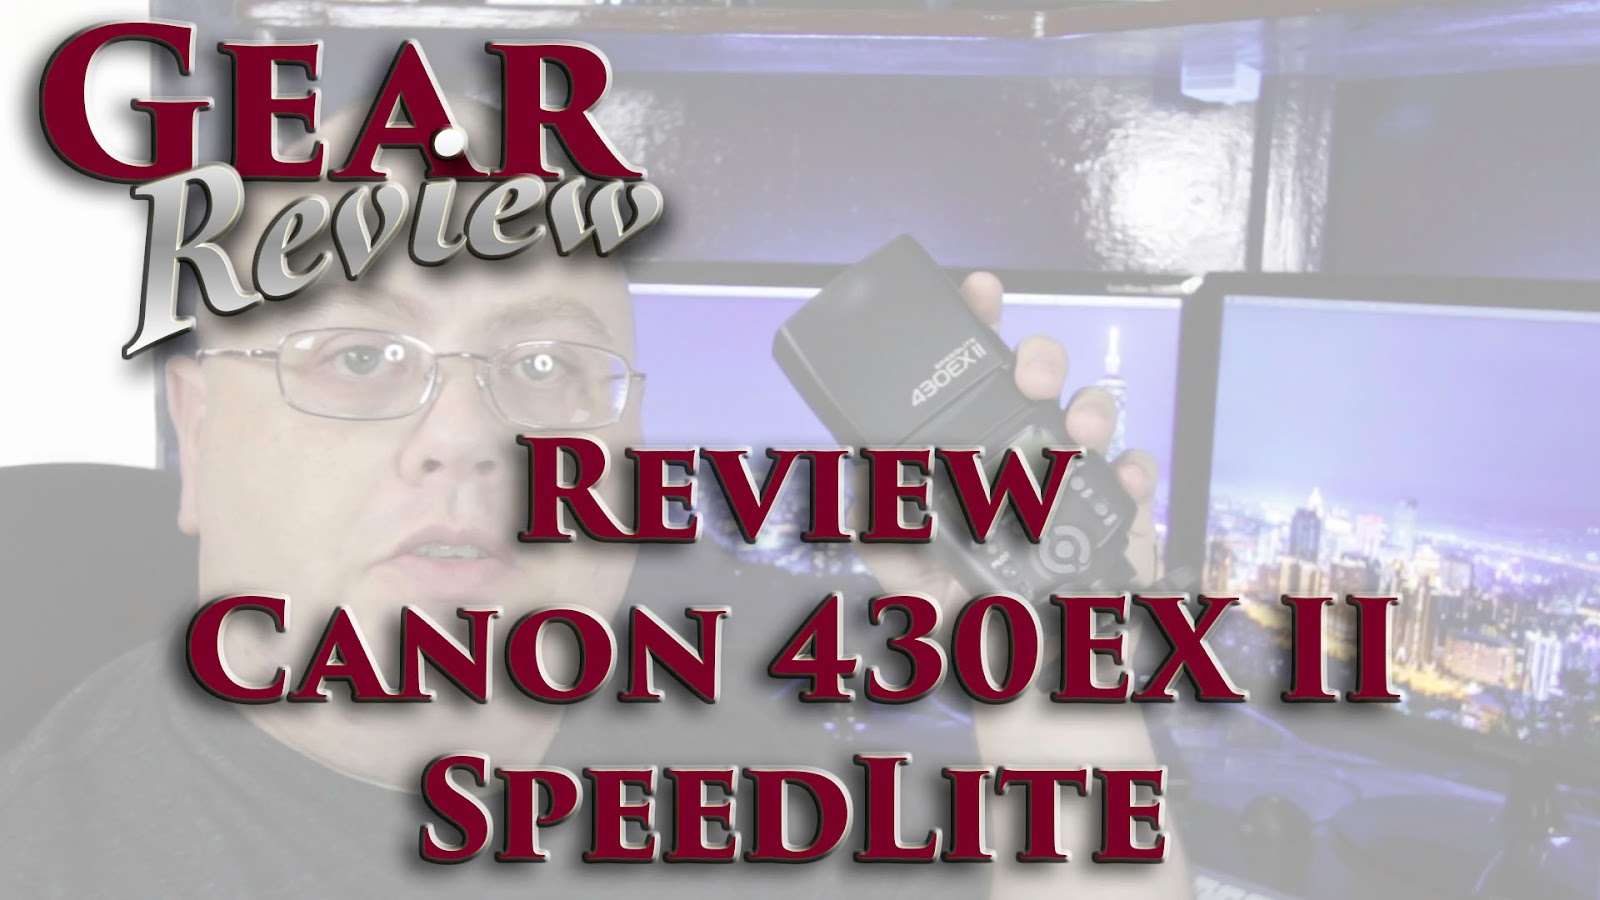 Review Of The Canon 430EX II SpeedLite